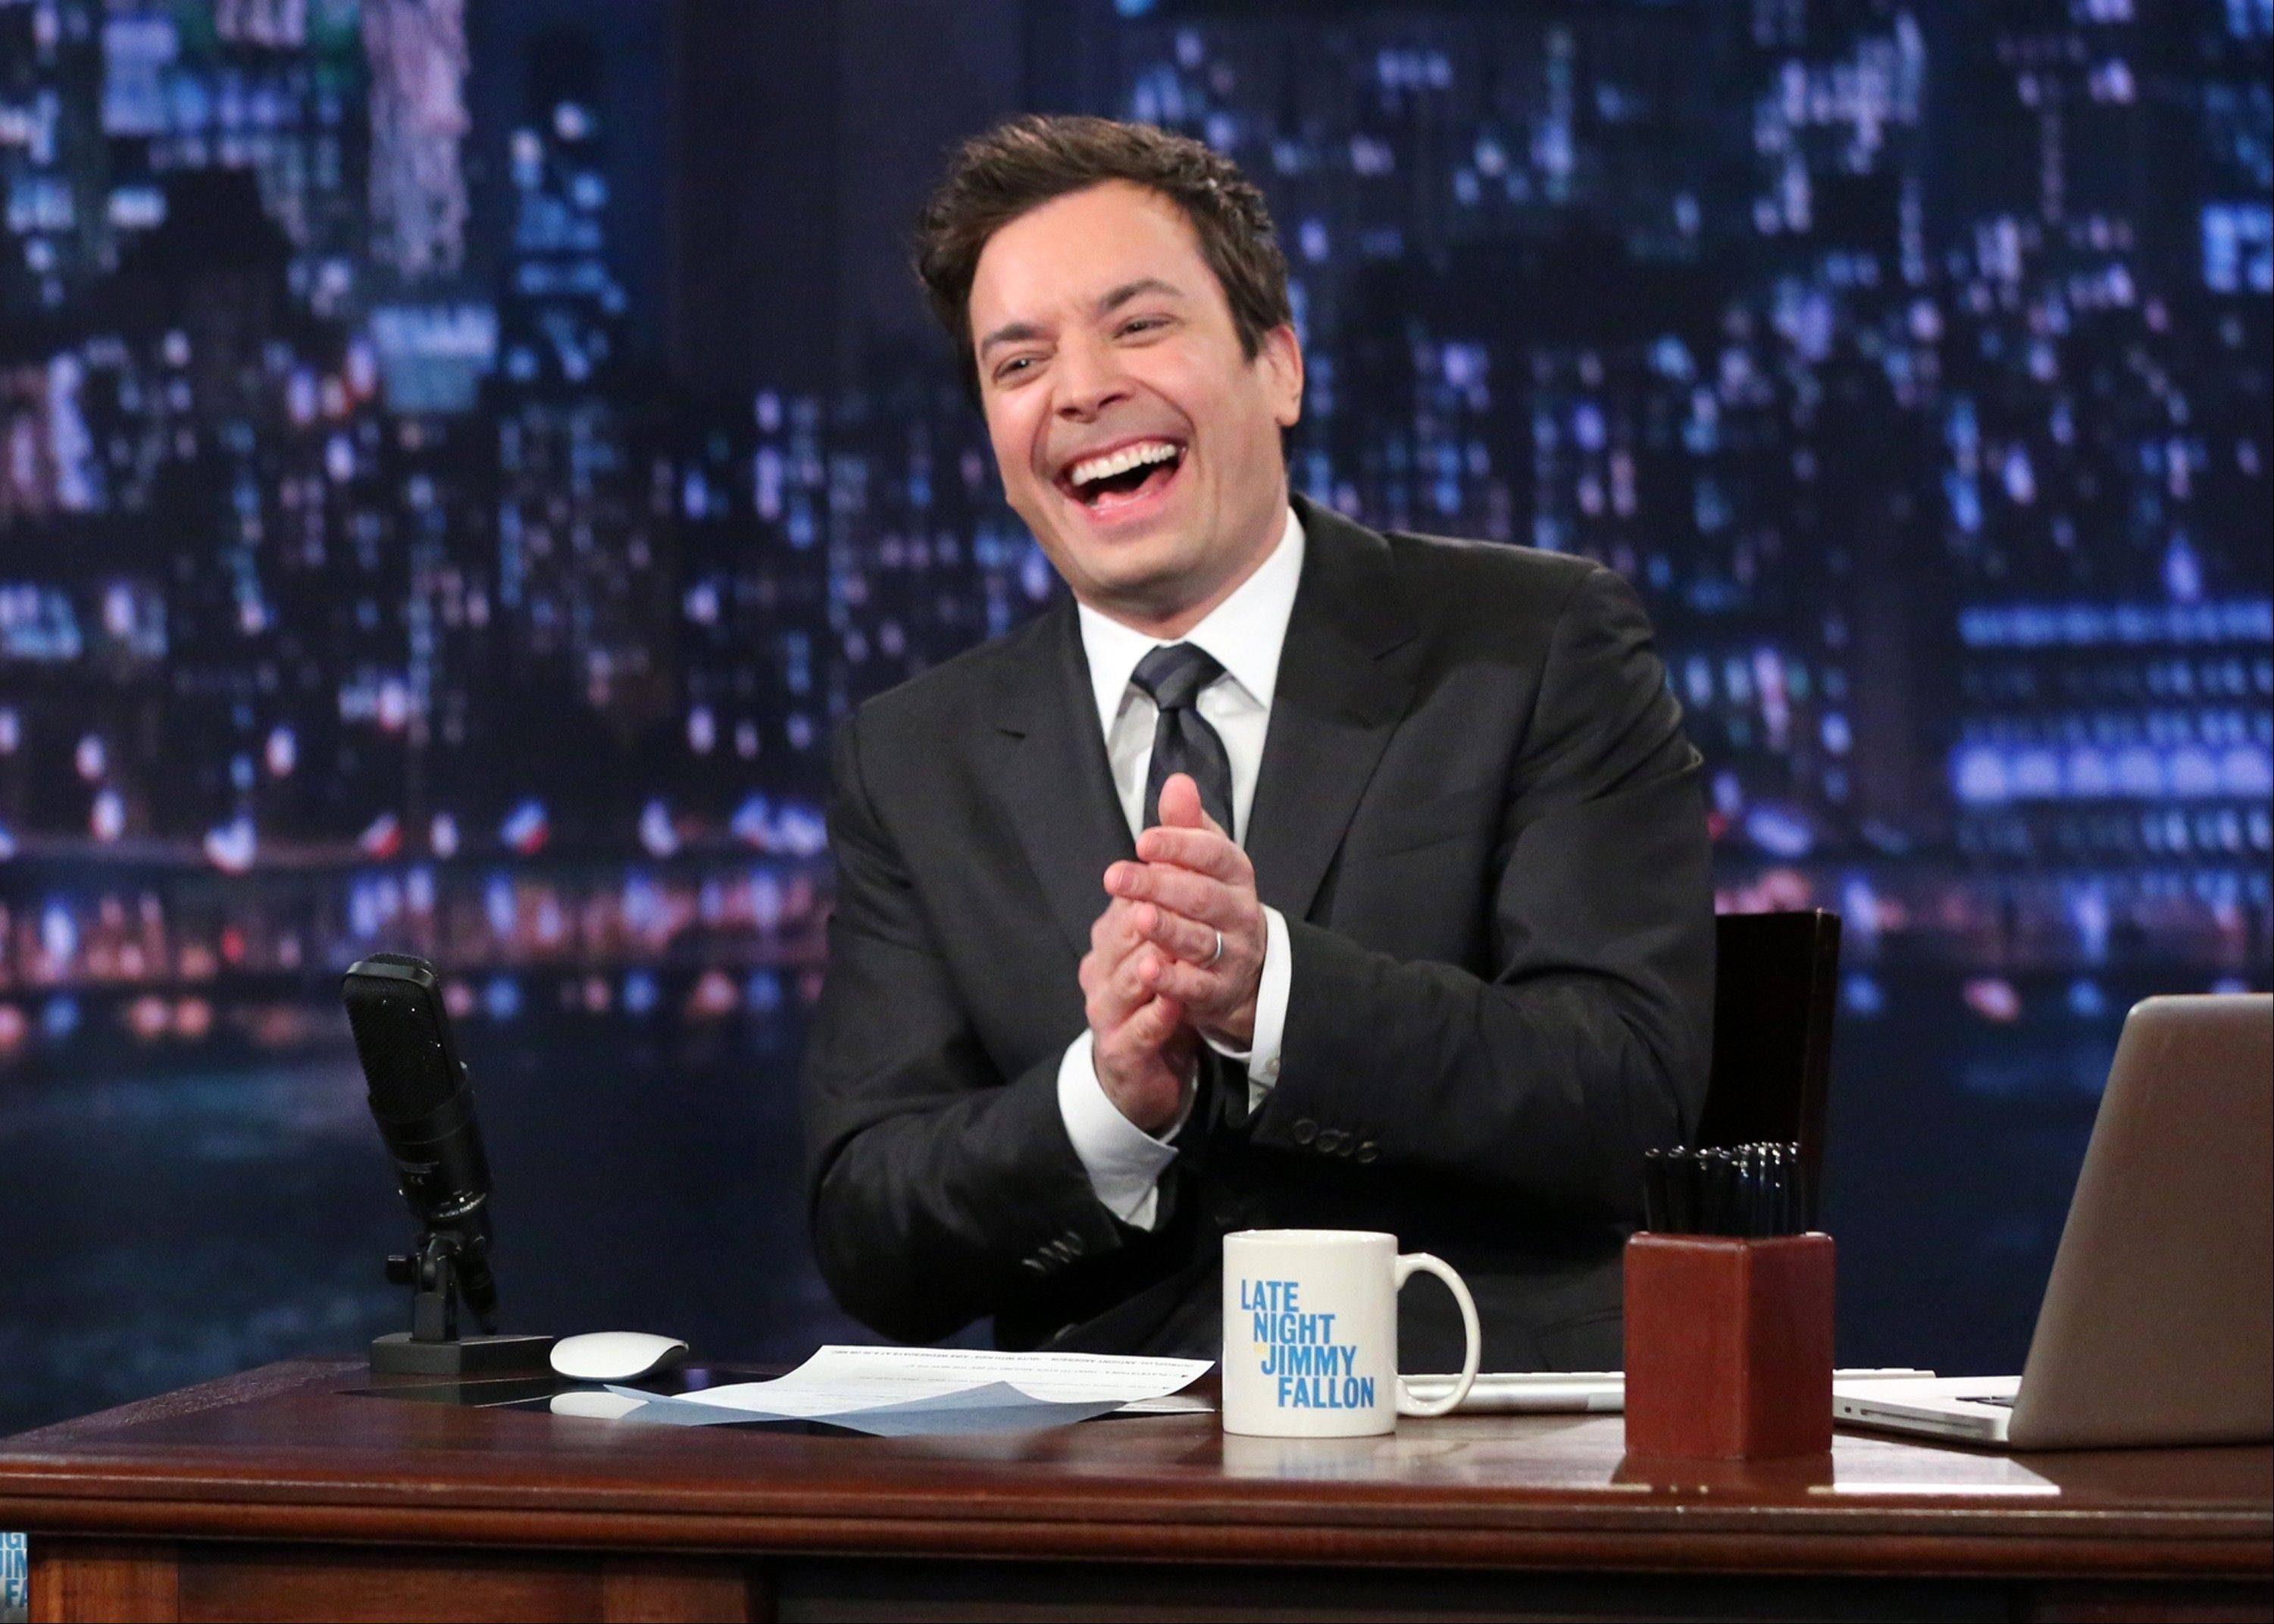 A study released of gags made by late-night comics, such as Jimmy Fallon, host of �Late Night with Jimmy Fallon,� found that President Obama and the Democrats provided the lion�s share of punchlines during the first six months of the year.